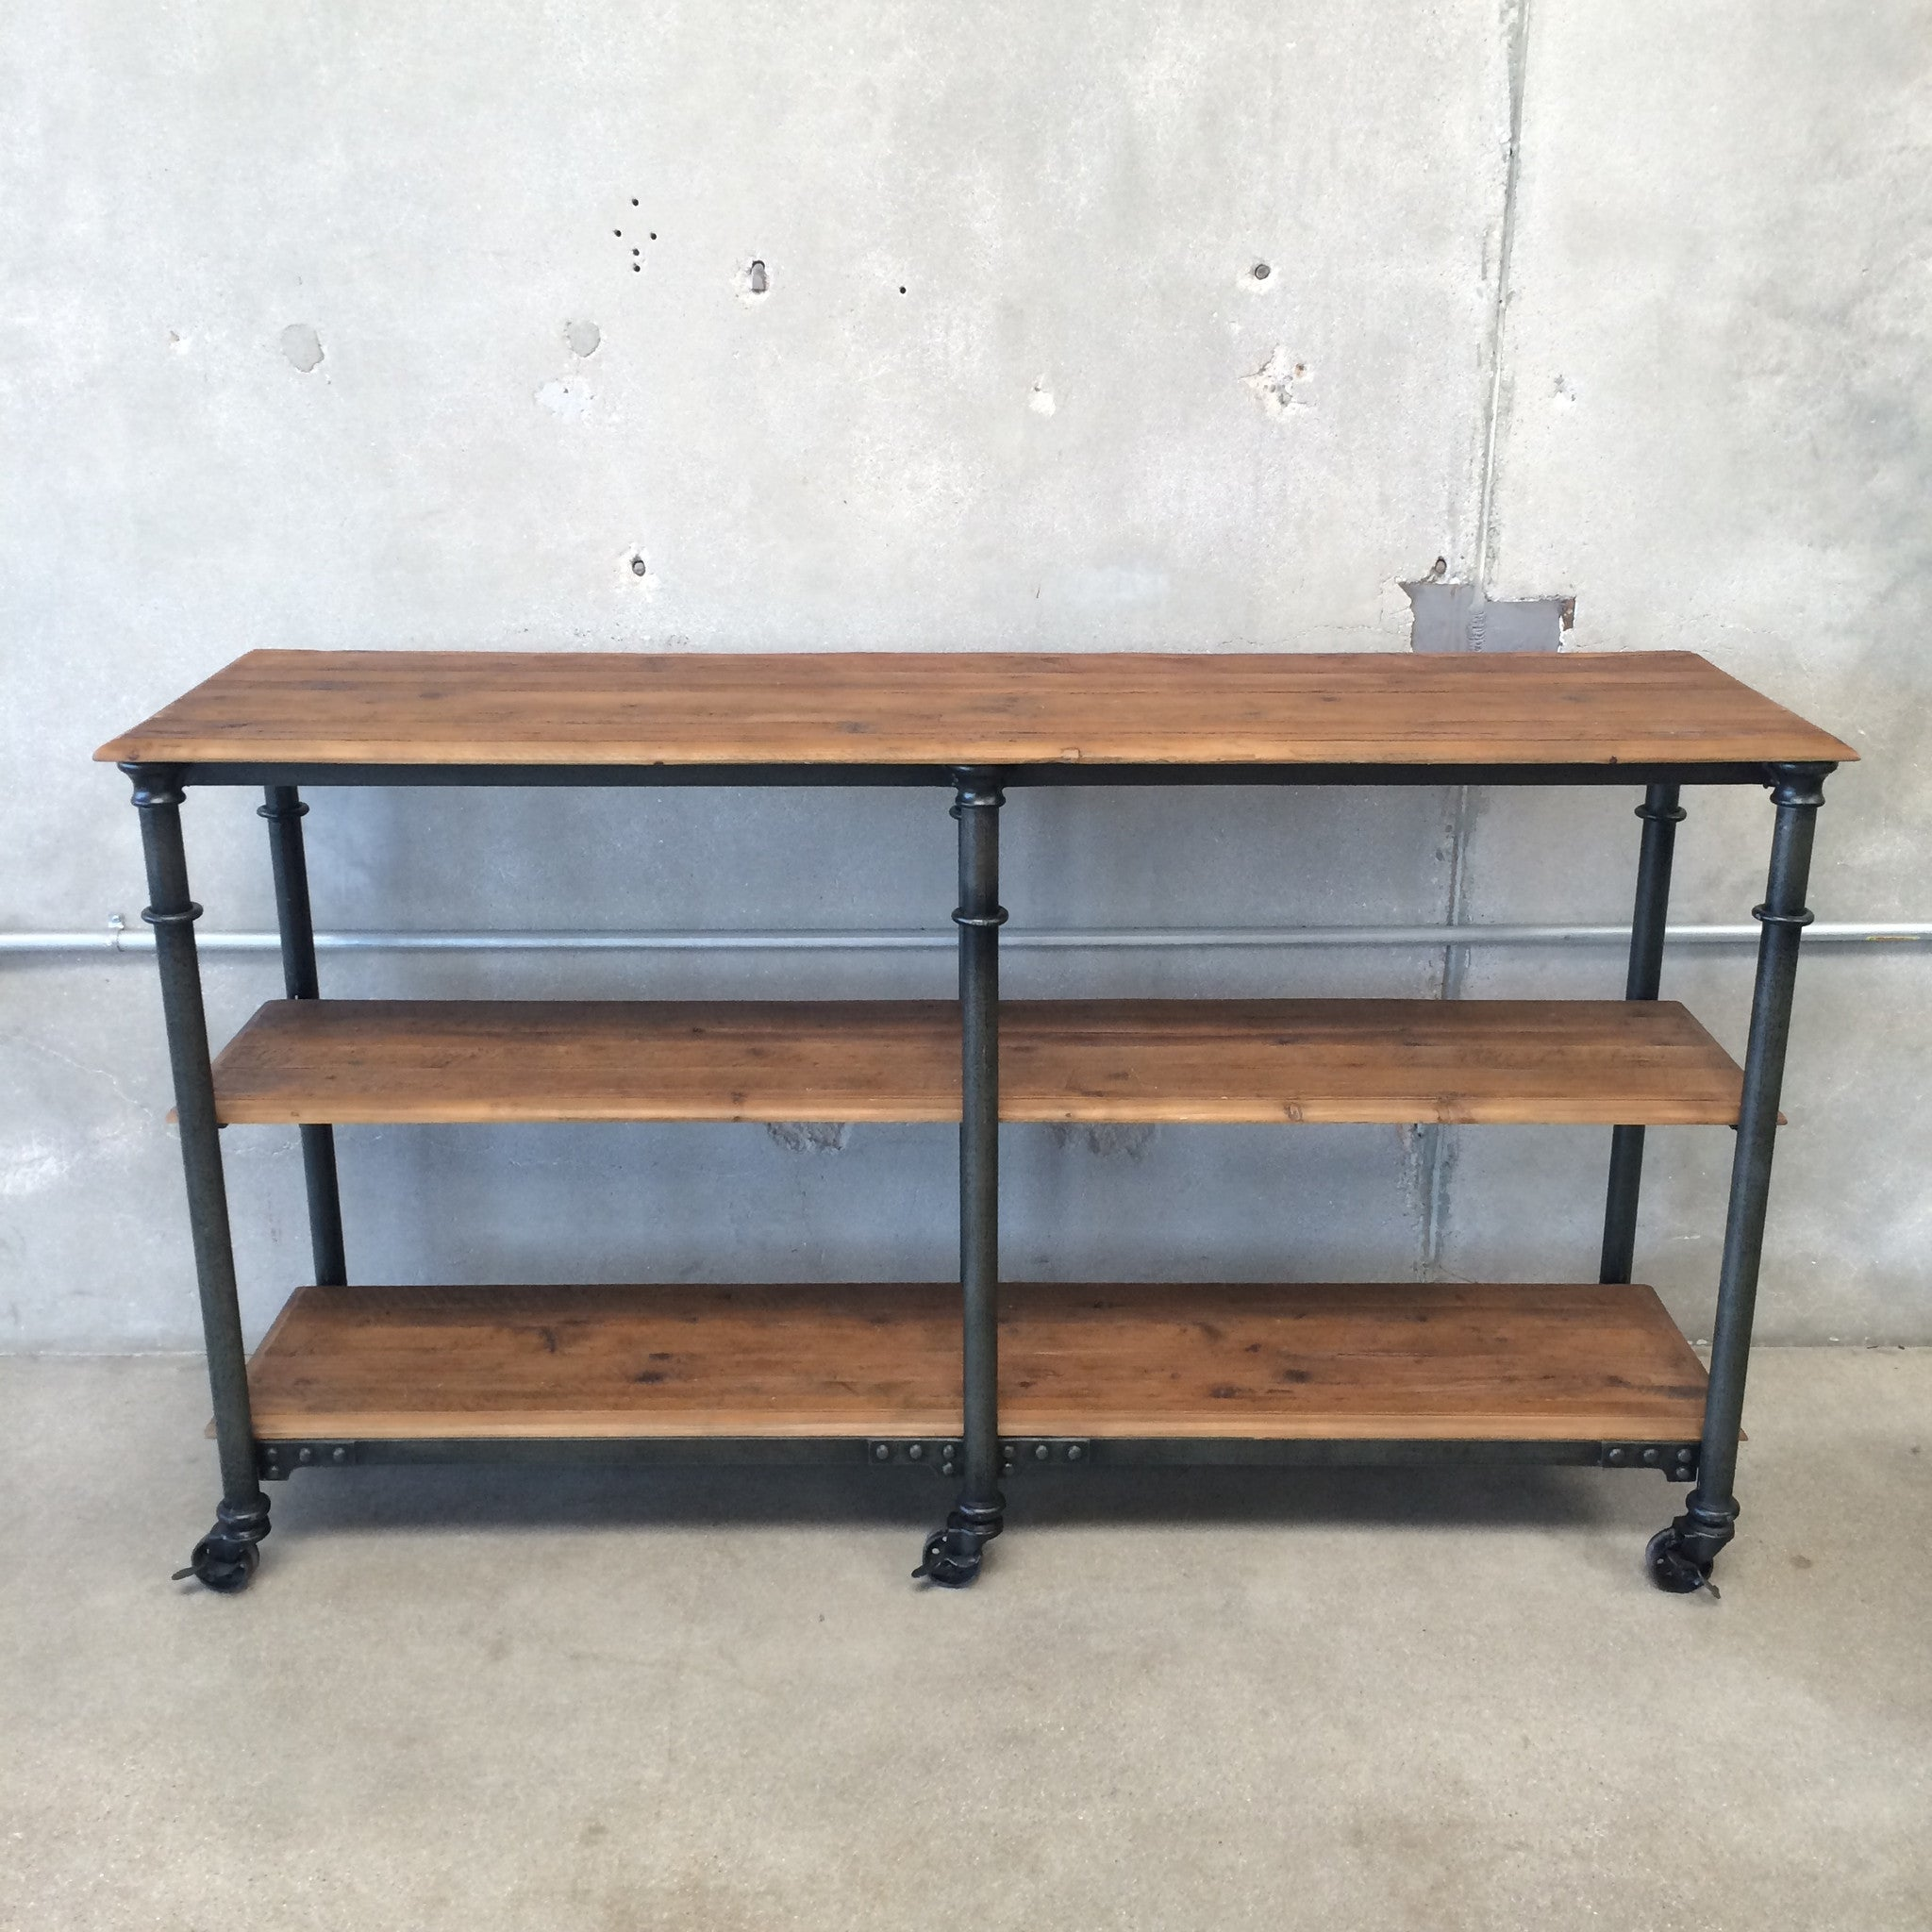 Wood And Metal Console Part - 38: Rolling Metal Console With Wood Shelves ...